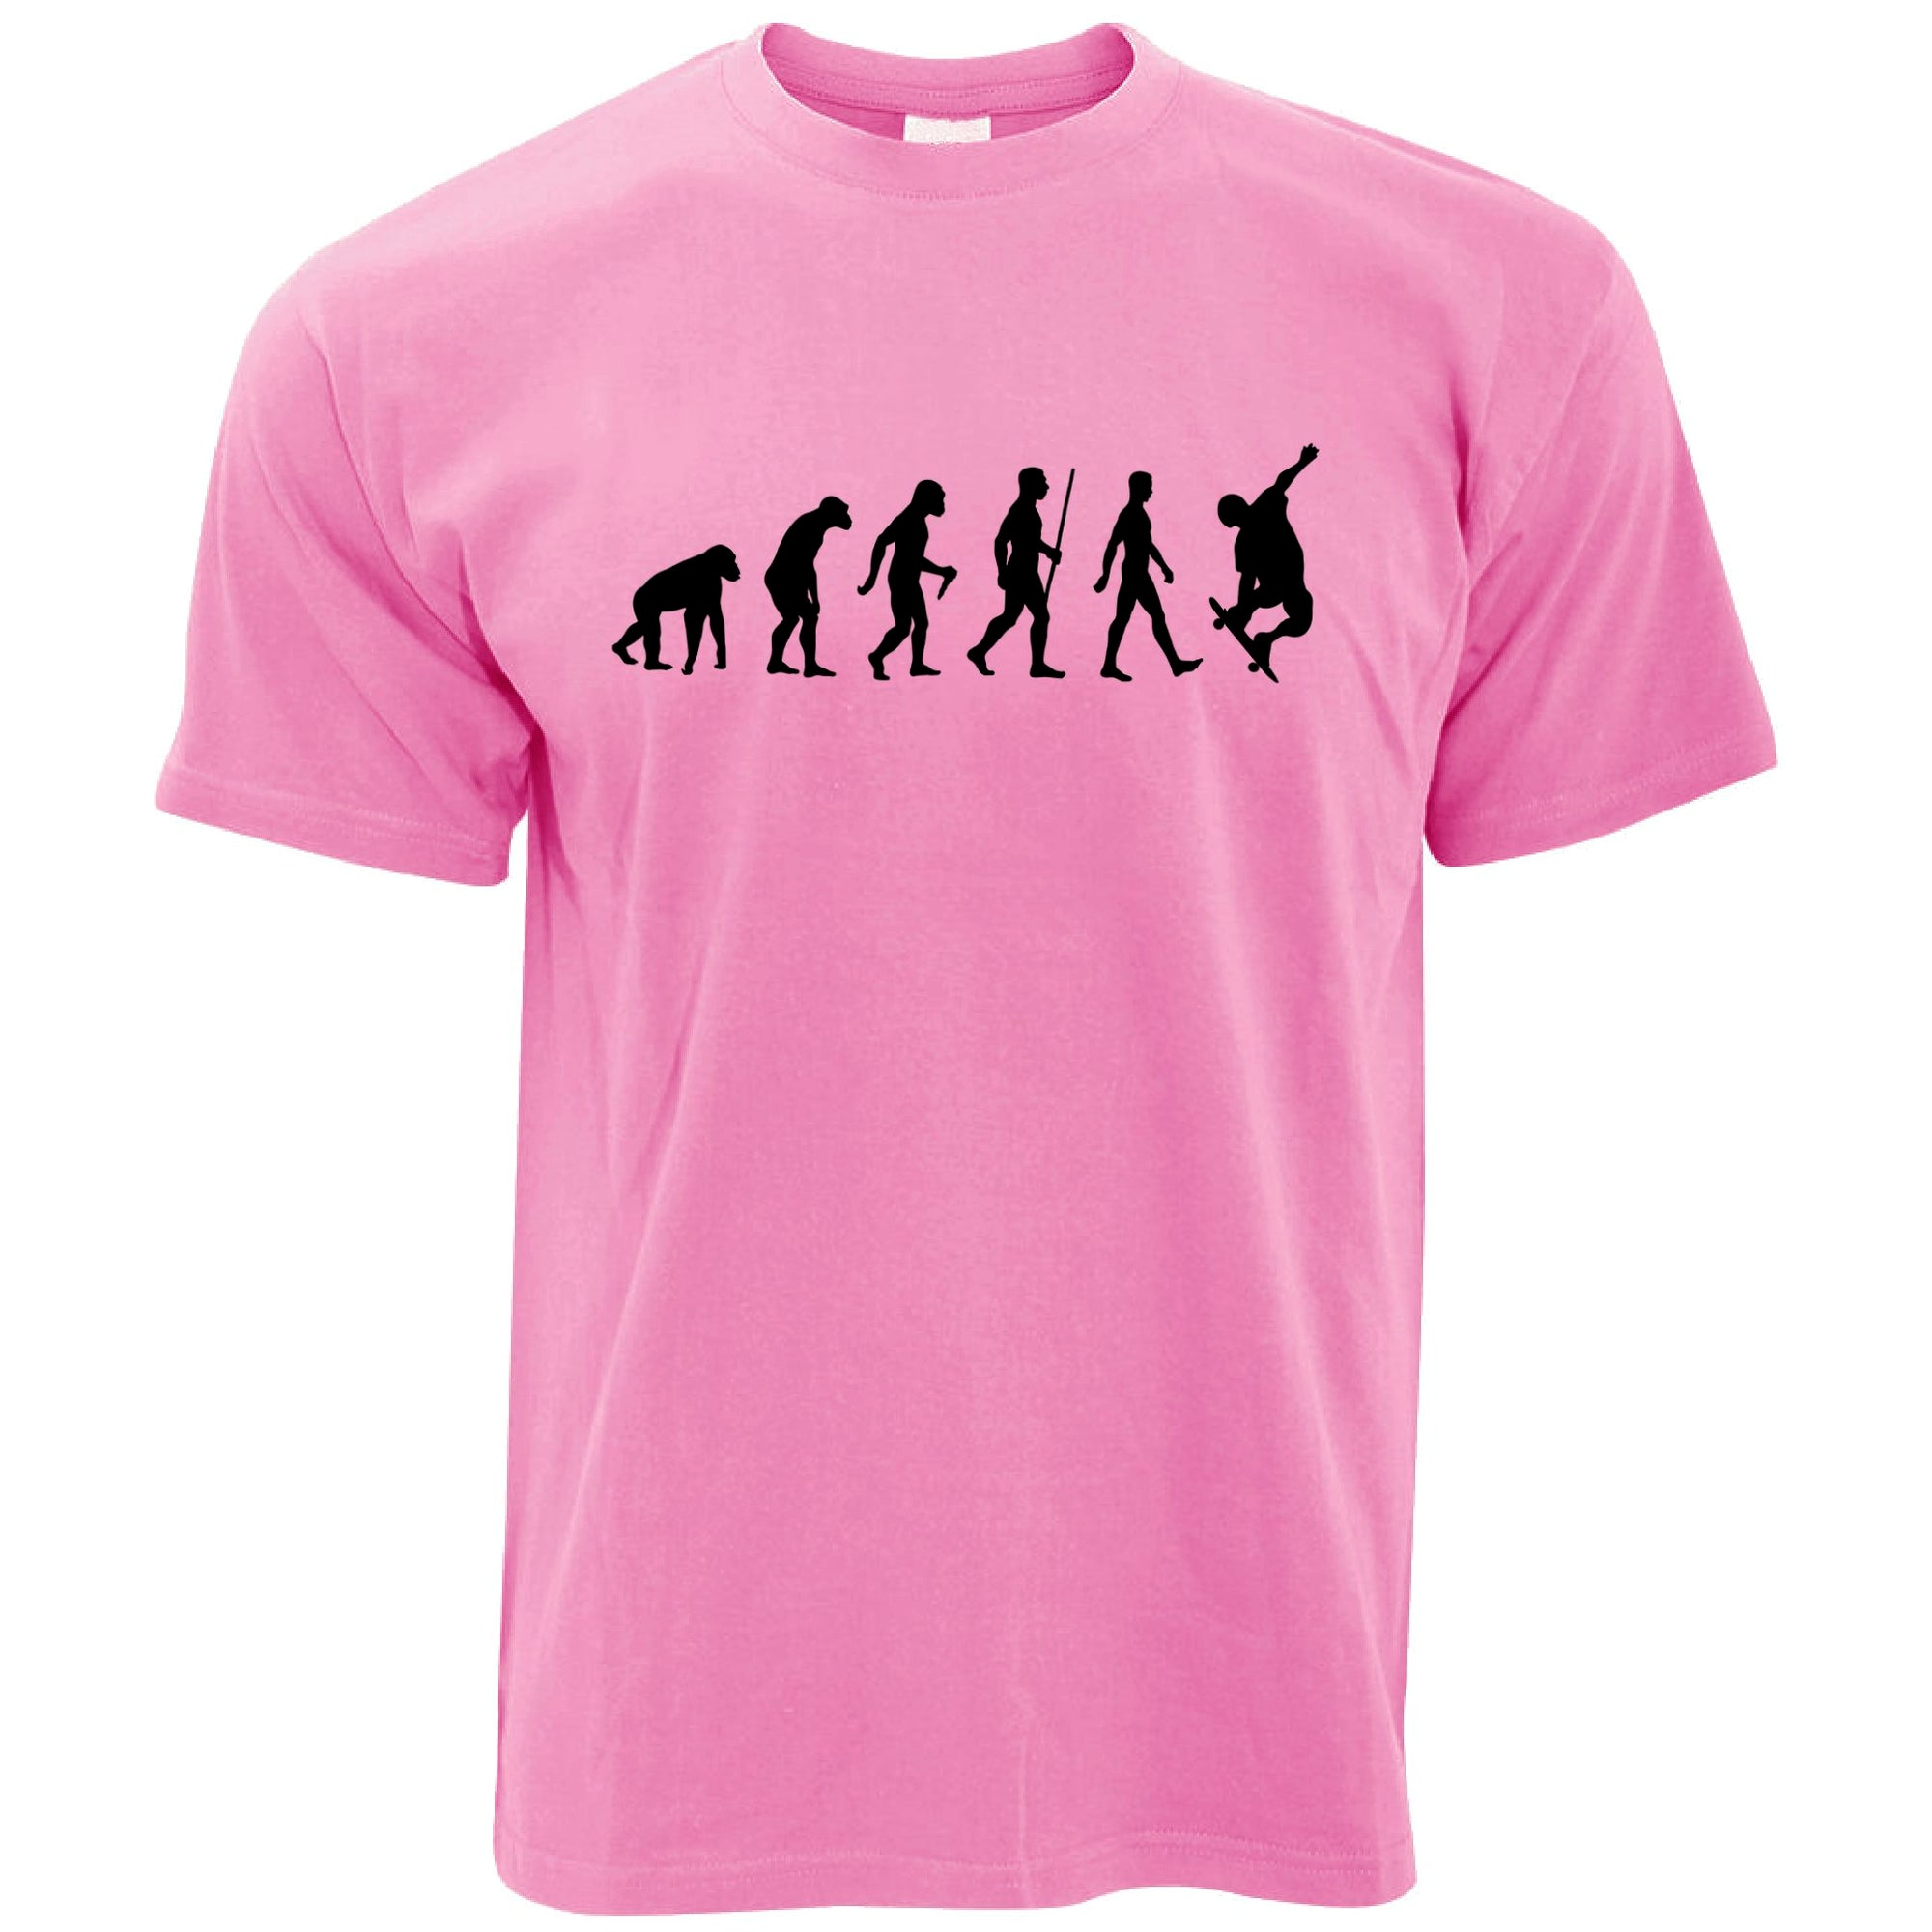 Sports T Shirt The Evolution Of A Skateboarder